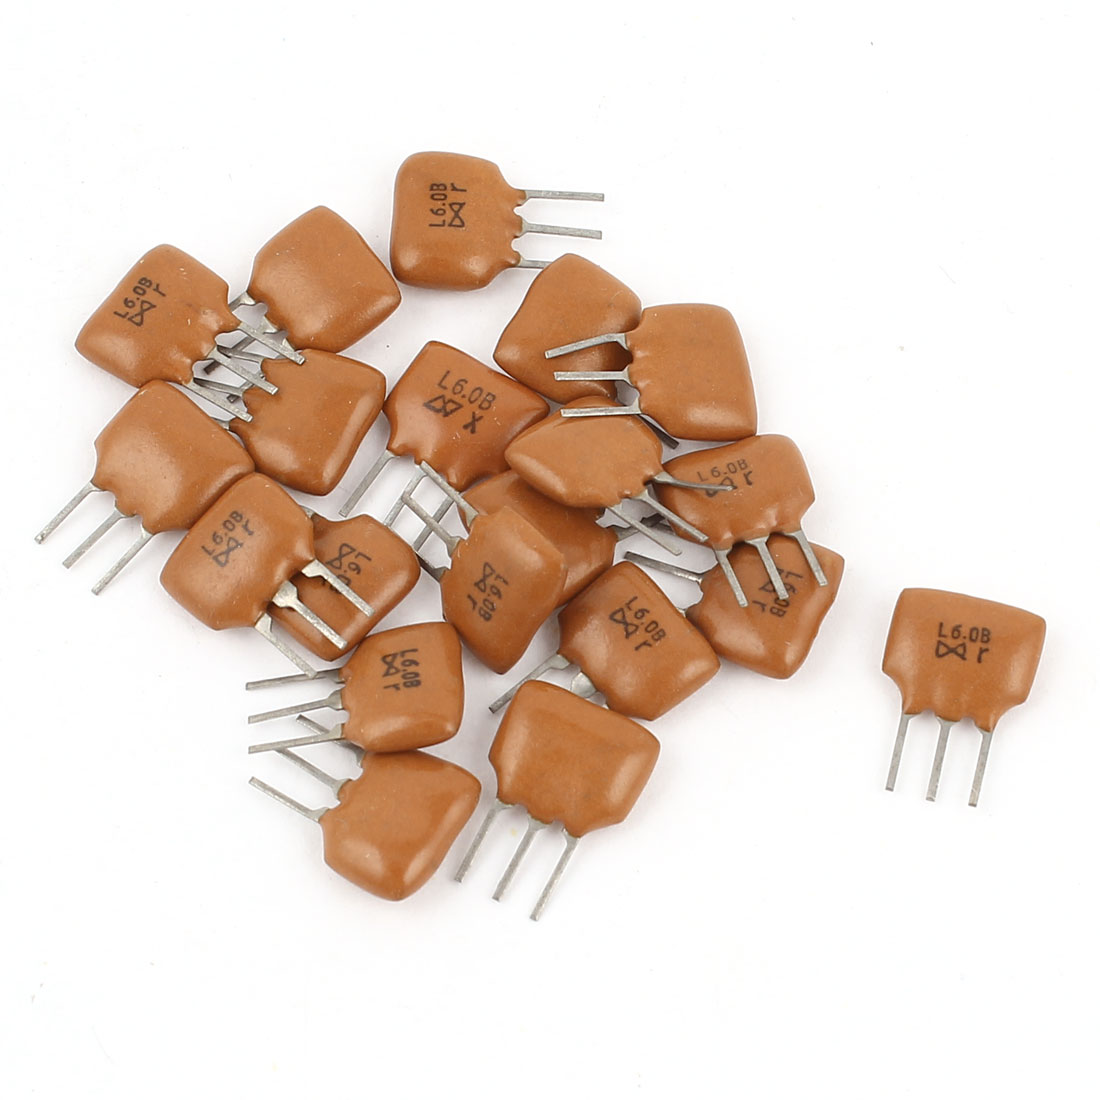 20 Pcs Radial Lead 3 Pole Ceramic Filter Crystal Resonator L6.0B 6.0MHz Frequency